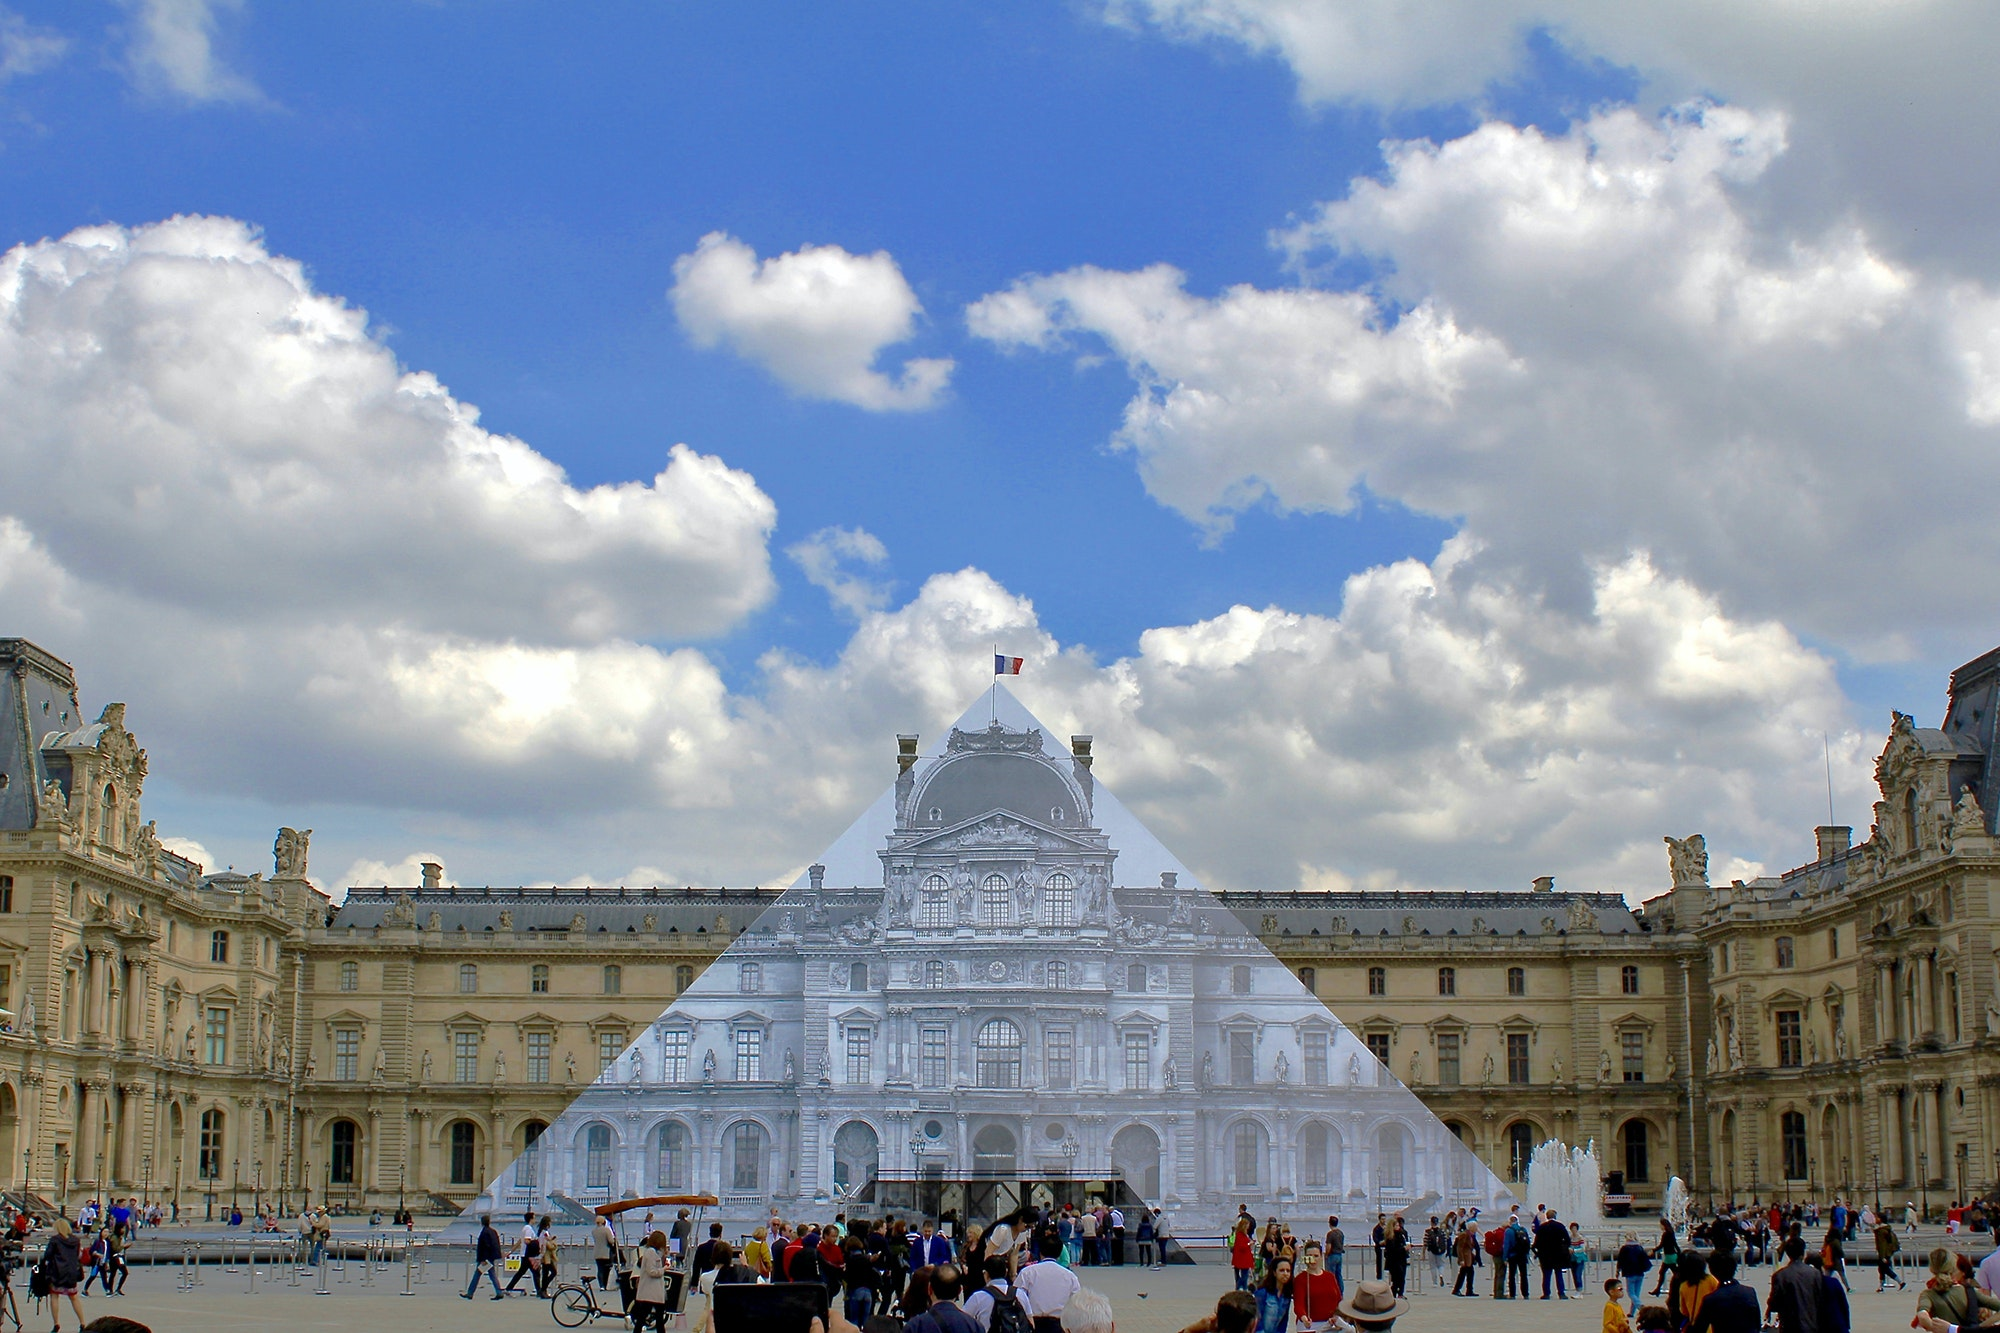 JR collaged the Louvre pyramid once before in 2016.